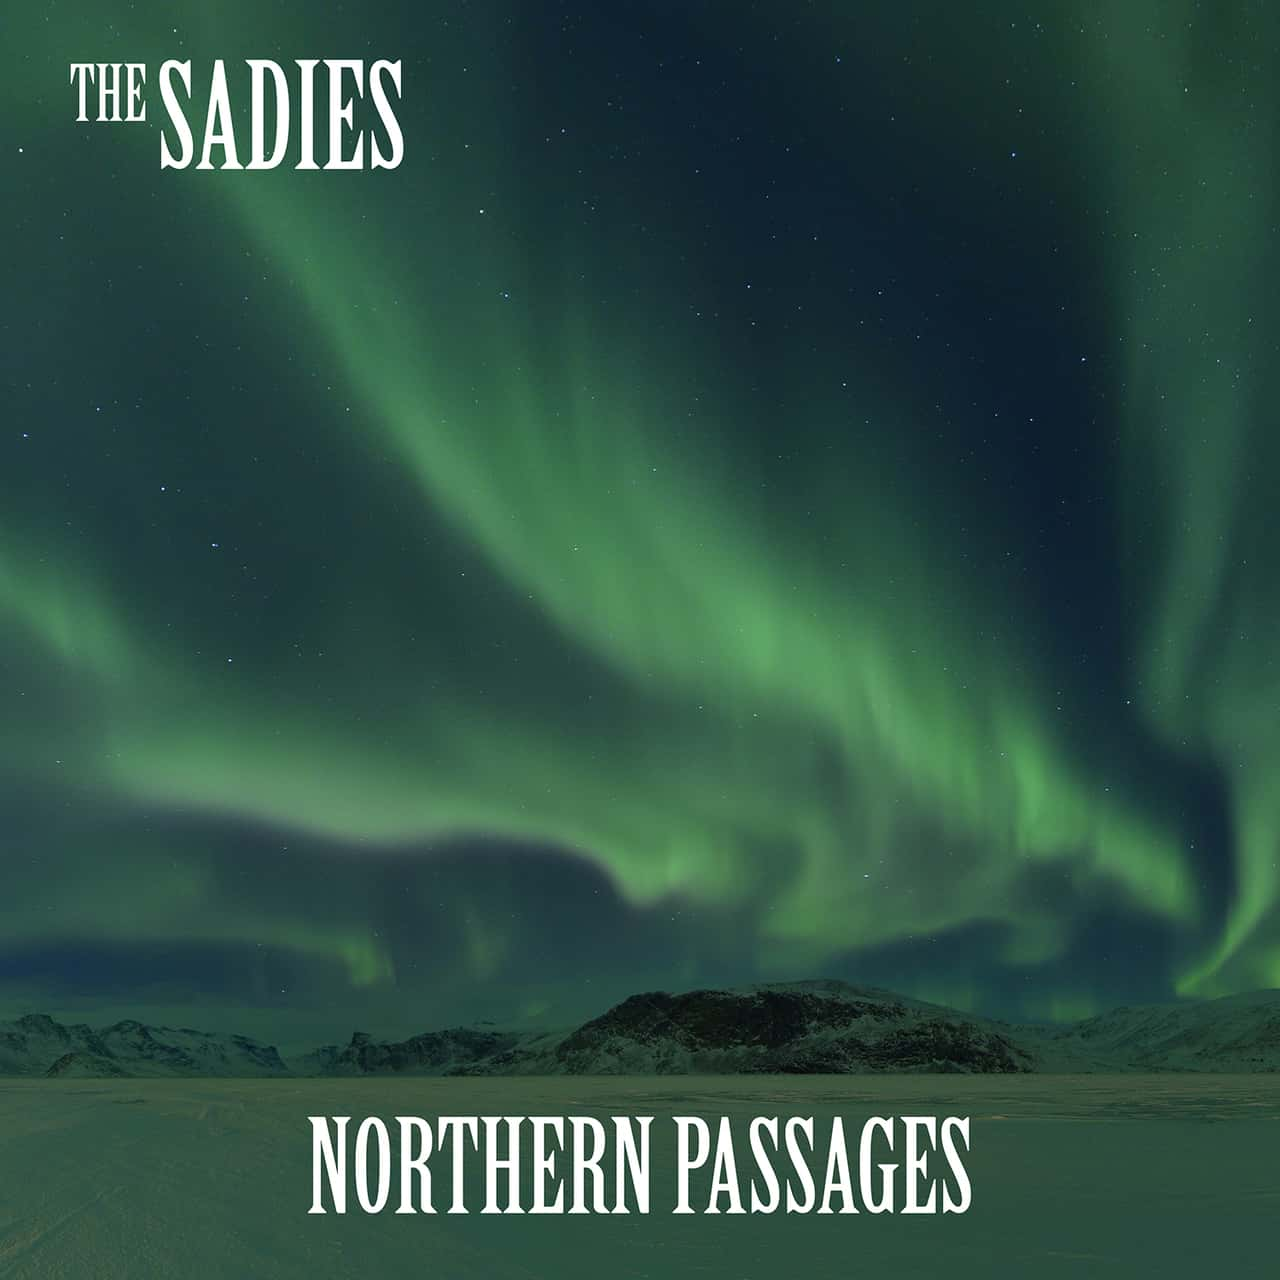 Bilderesultat for the sadies northern passages